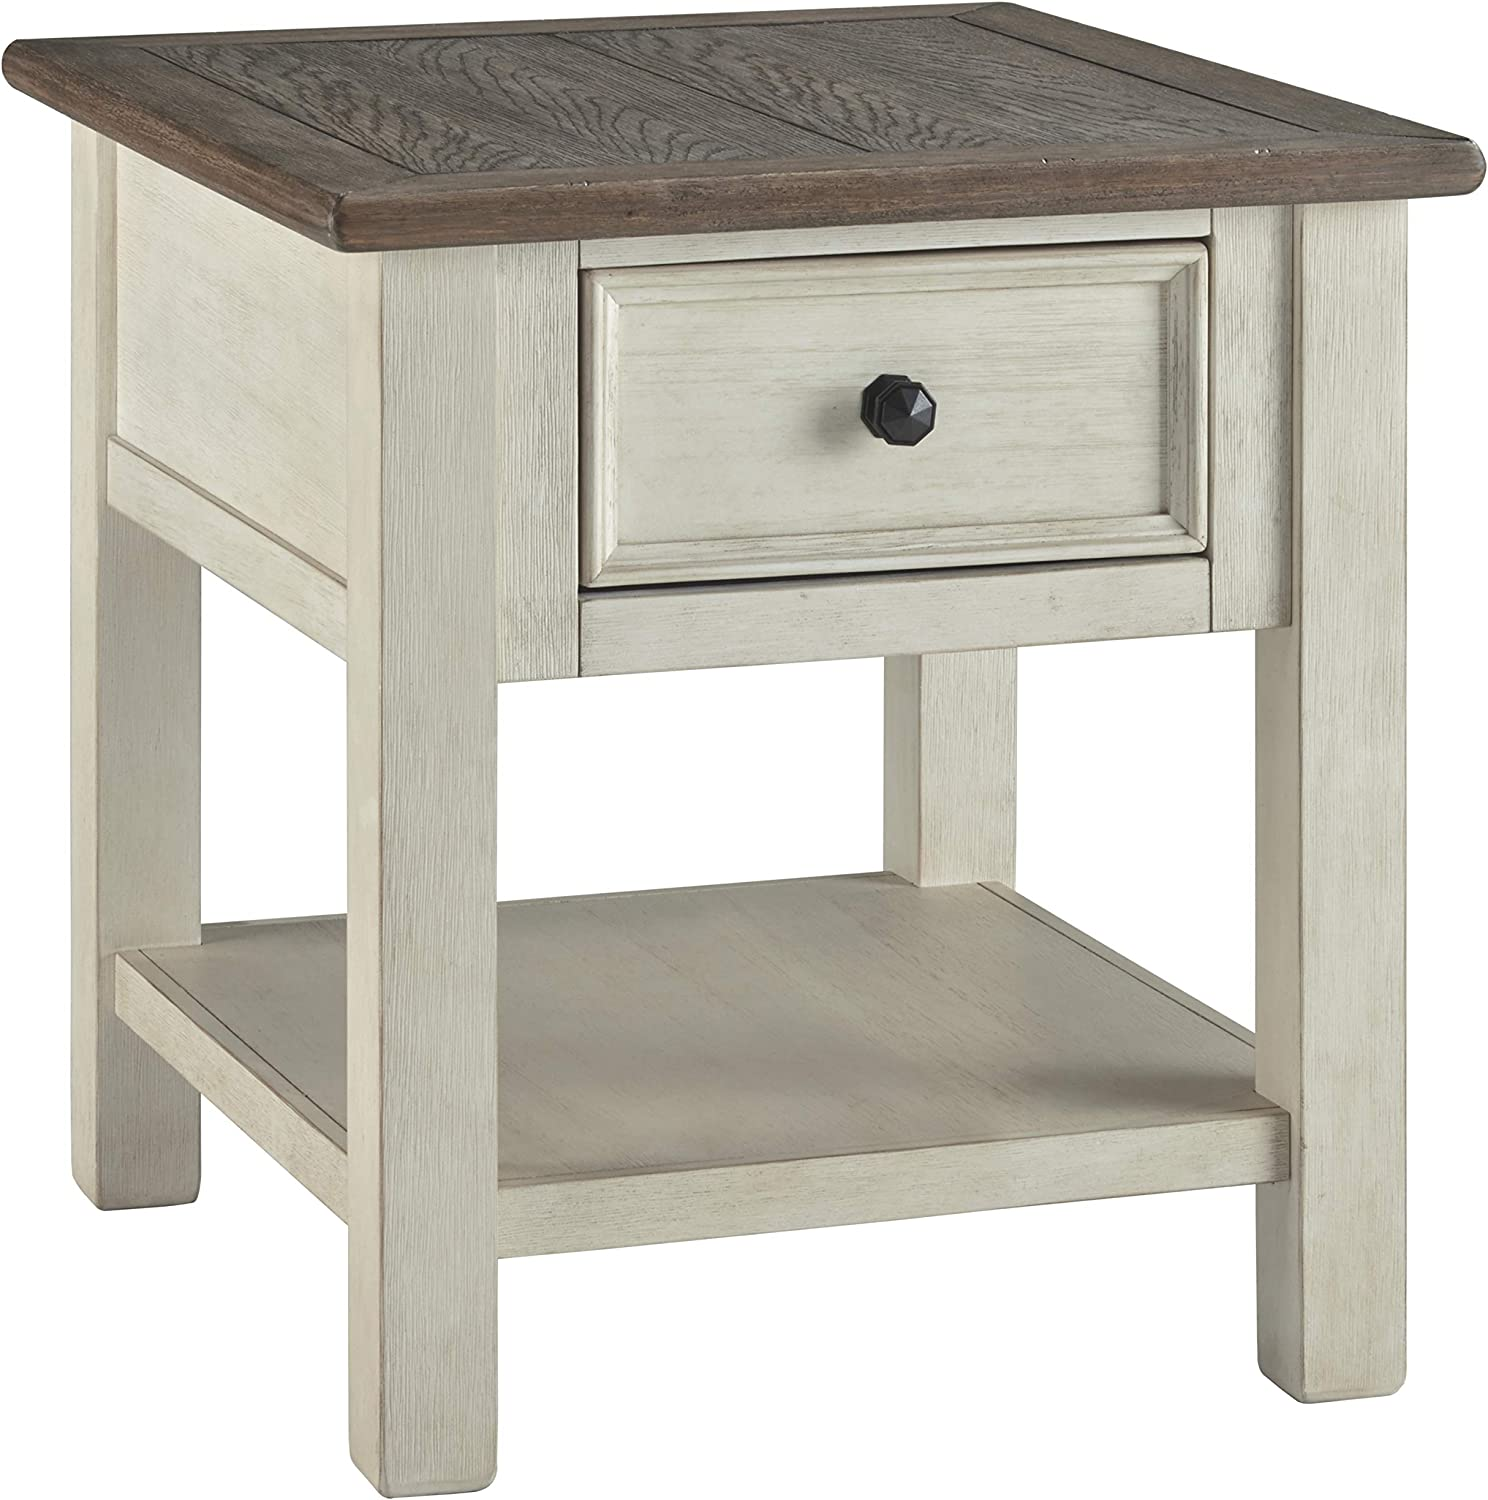 Signature Design by Ashley T637-3 Bolanburg End Table, Two-Tone